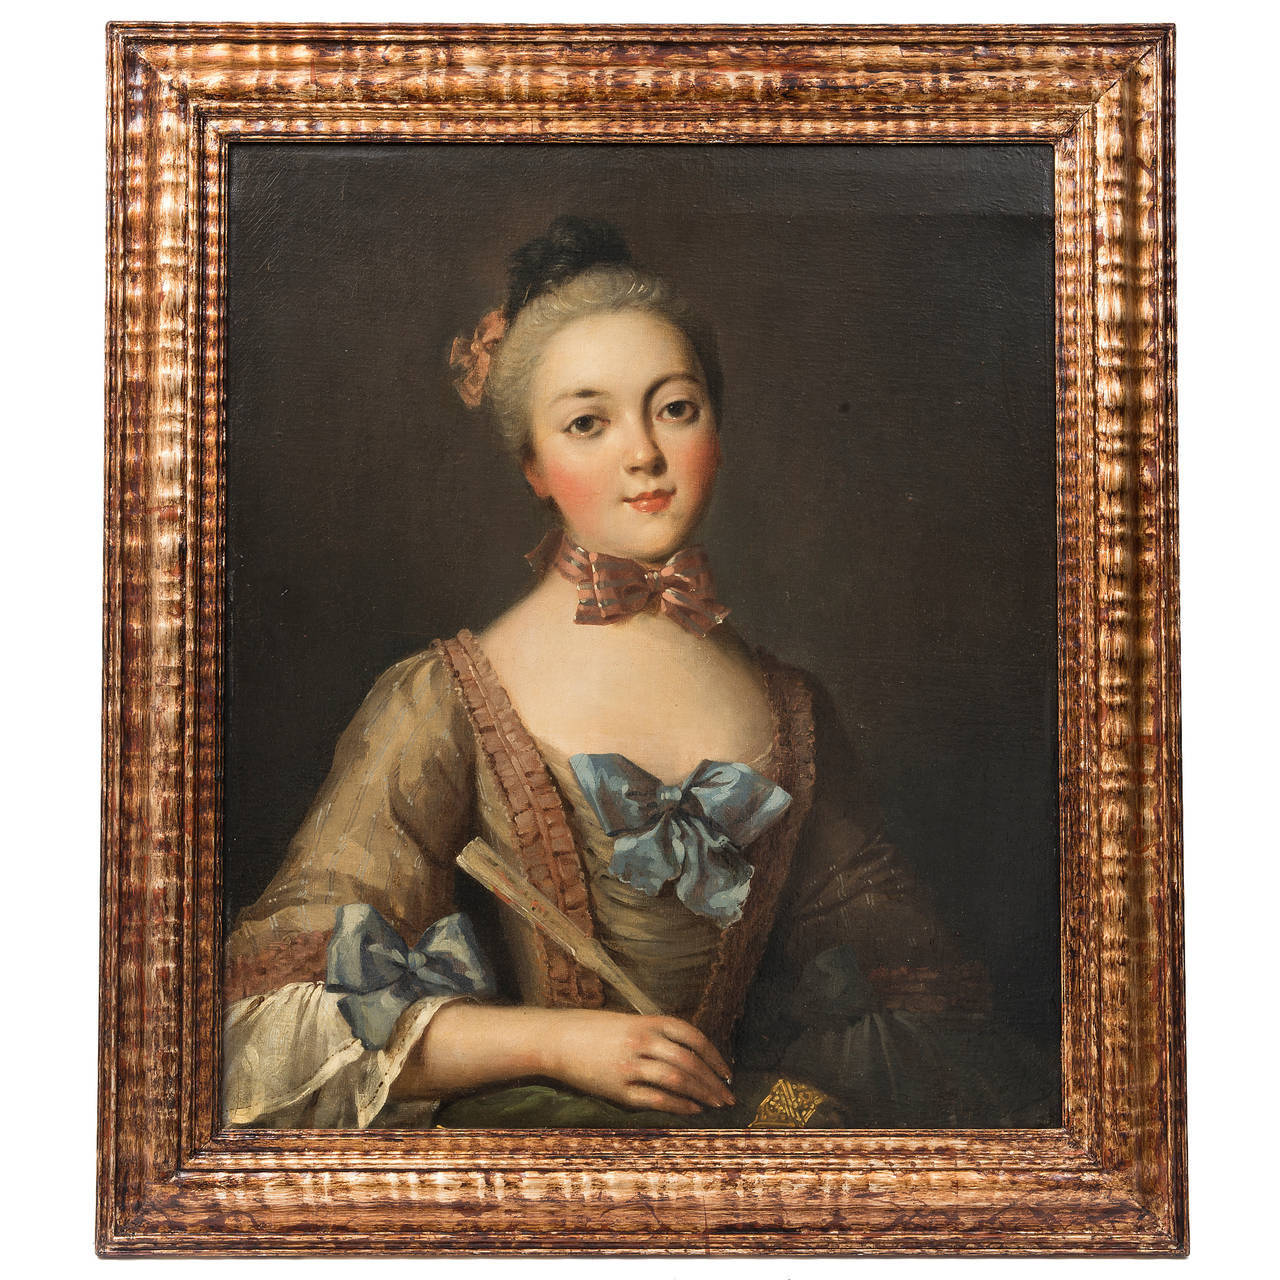 French 18th Century Portrait of a Young Noblewoman, Oil on Canvas 1